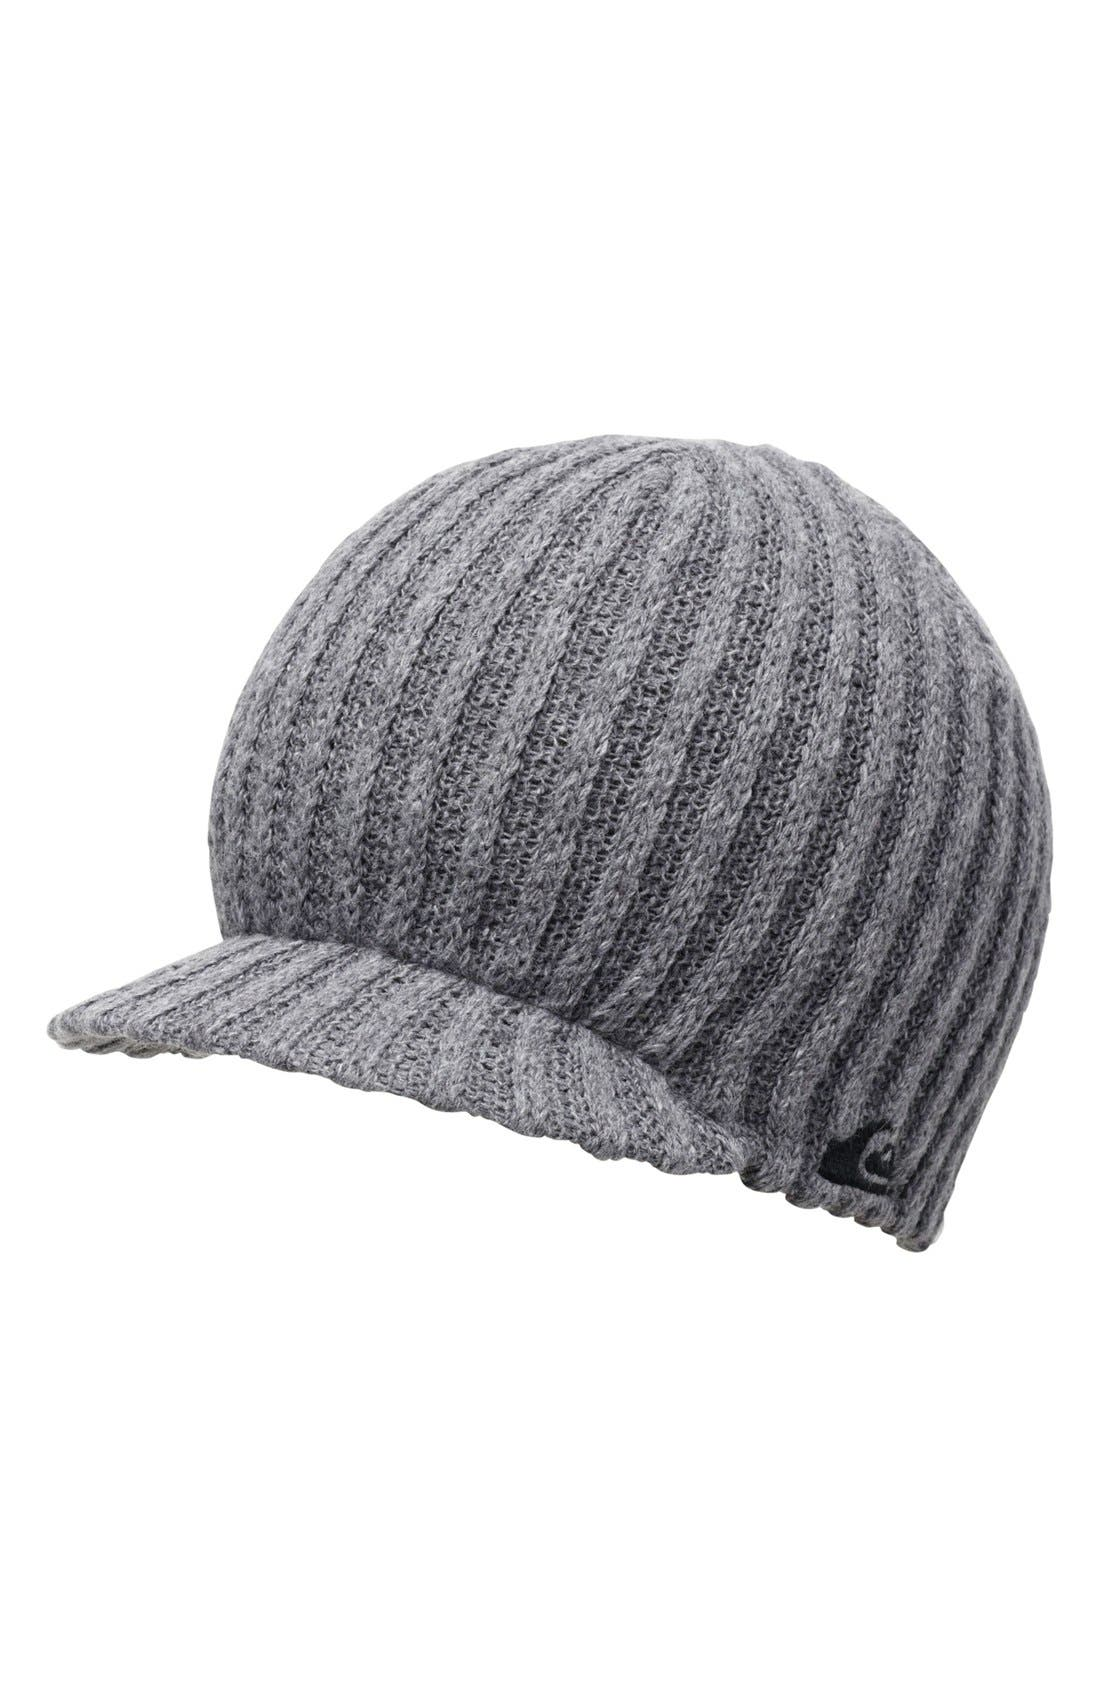 Alternate Image 1 Selected - Quiksilver 'Truce' Beanie (Toddler Boys)